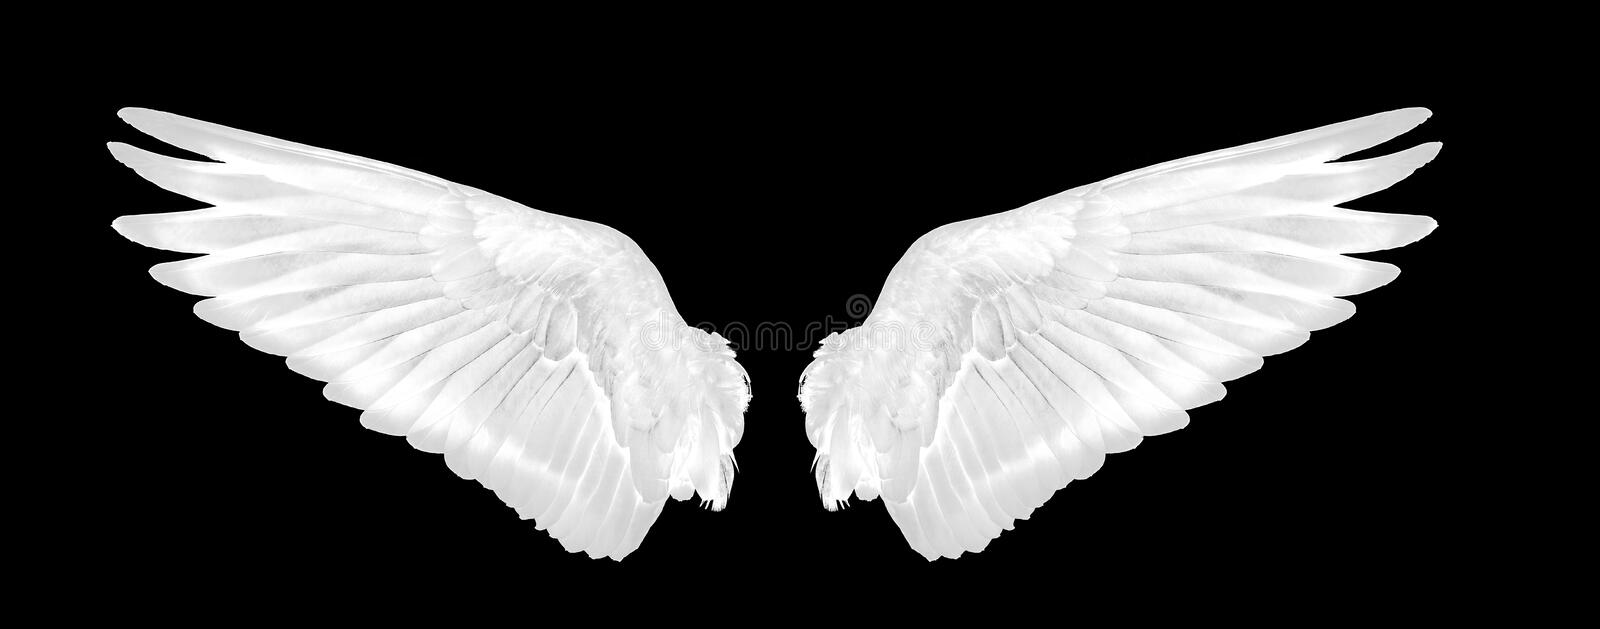 White wings of bird on black background royalty free stock photo